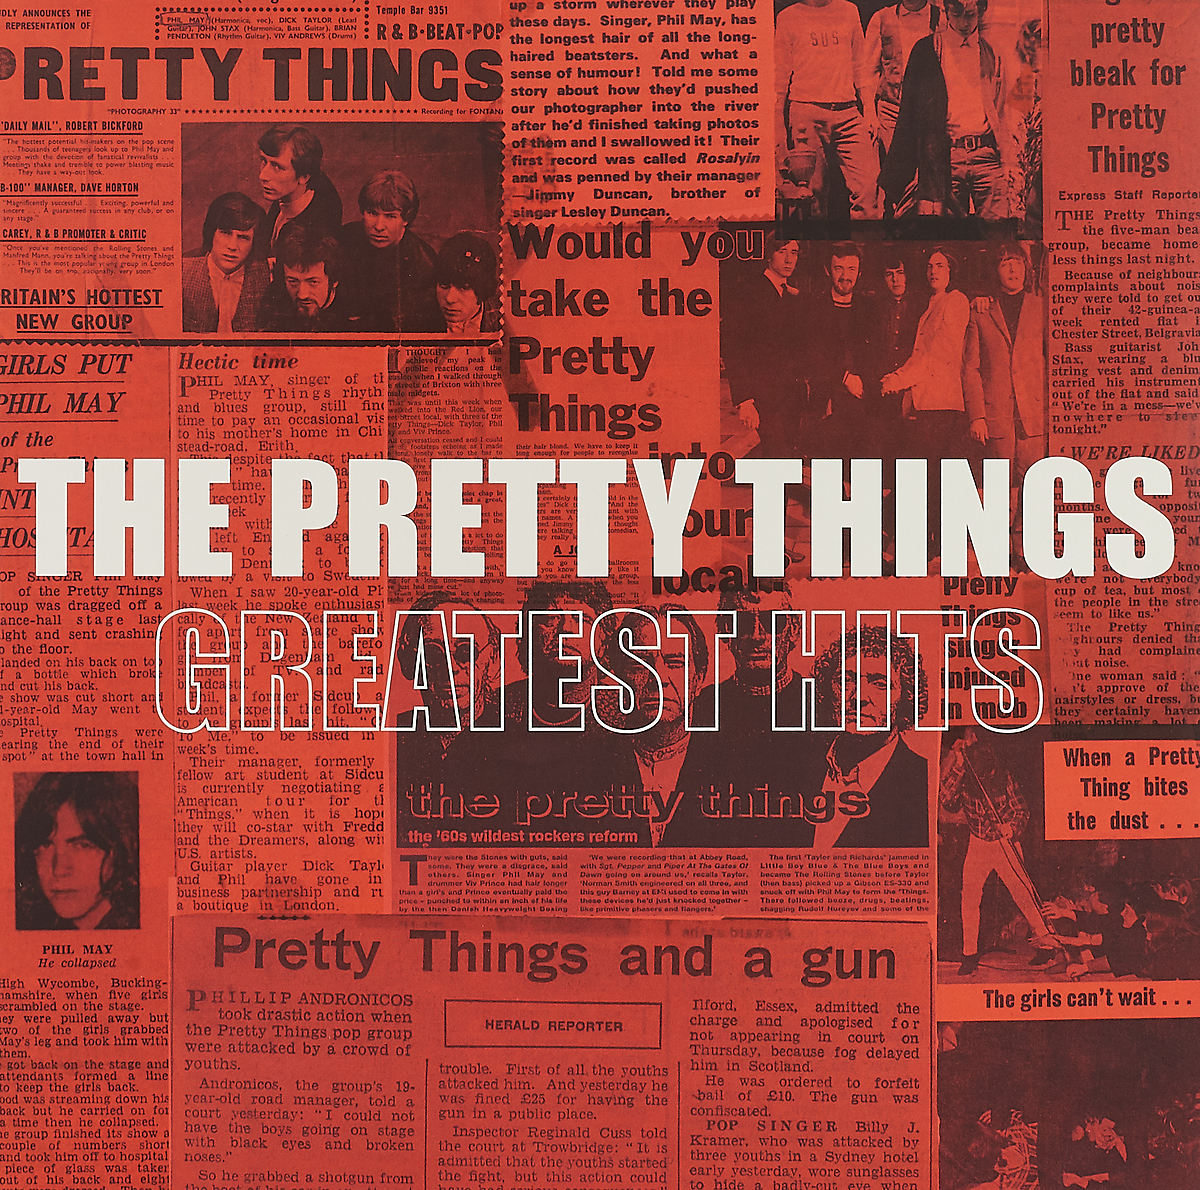 The Pretty Things The Pretty Things. Greatest Hits (2 LP) пол ривейр the raiders the velvet underground the mojos the easybeats the pretty things the kinks чак берри эдди флойд жак брель bowie heard them here first